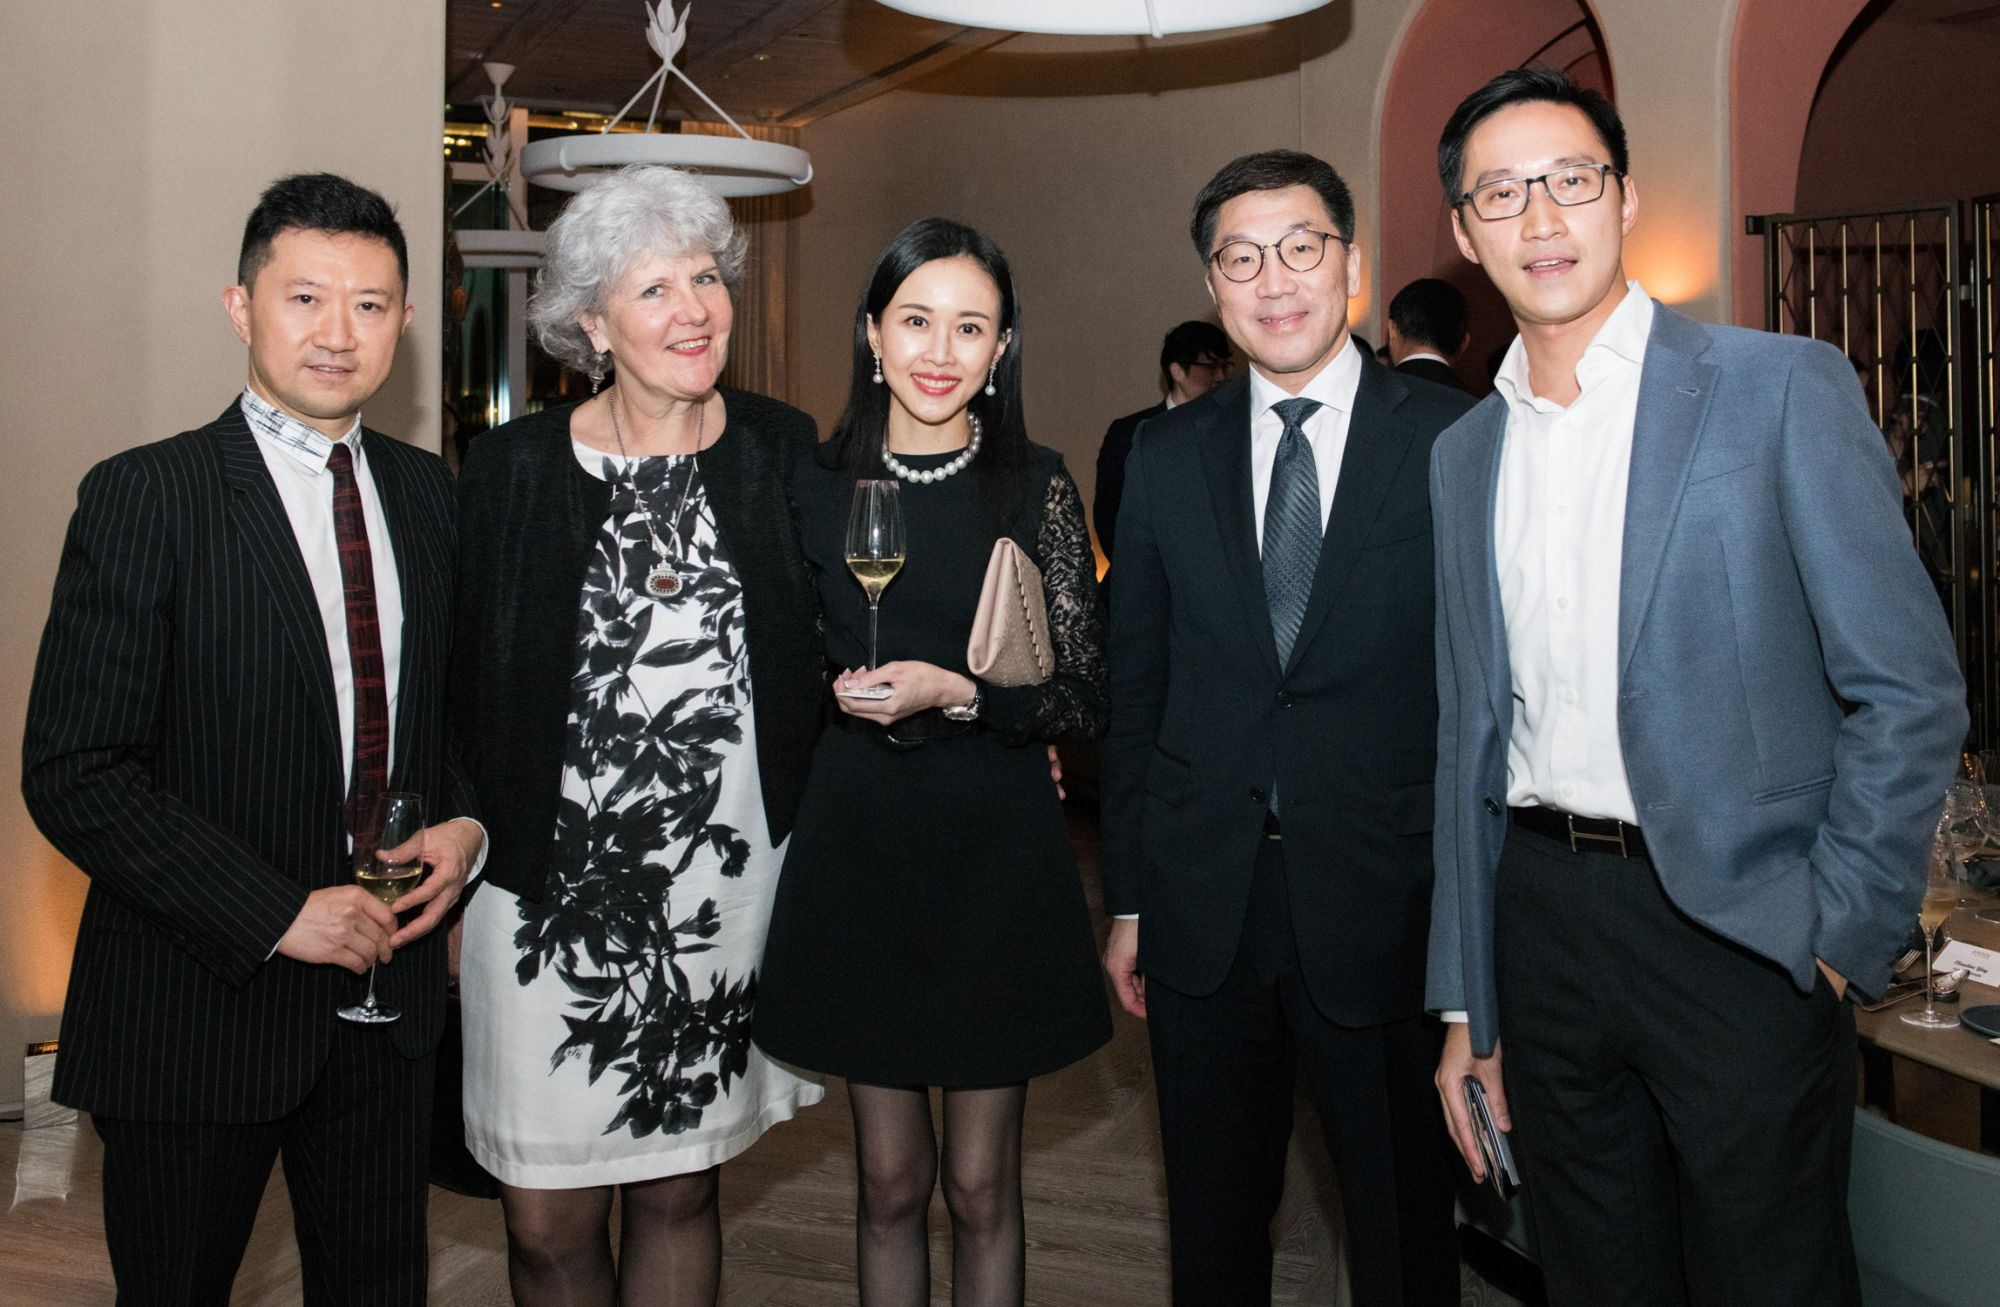 Ricky Chim, Madeleine Berti, Jacqueline Chow, Christopher Chan, Evan Chow